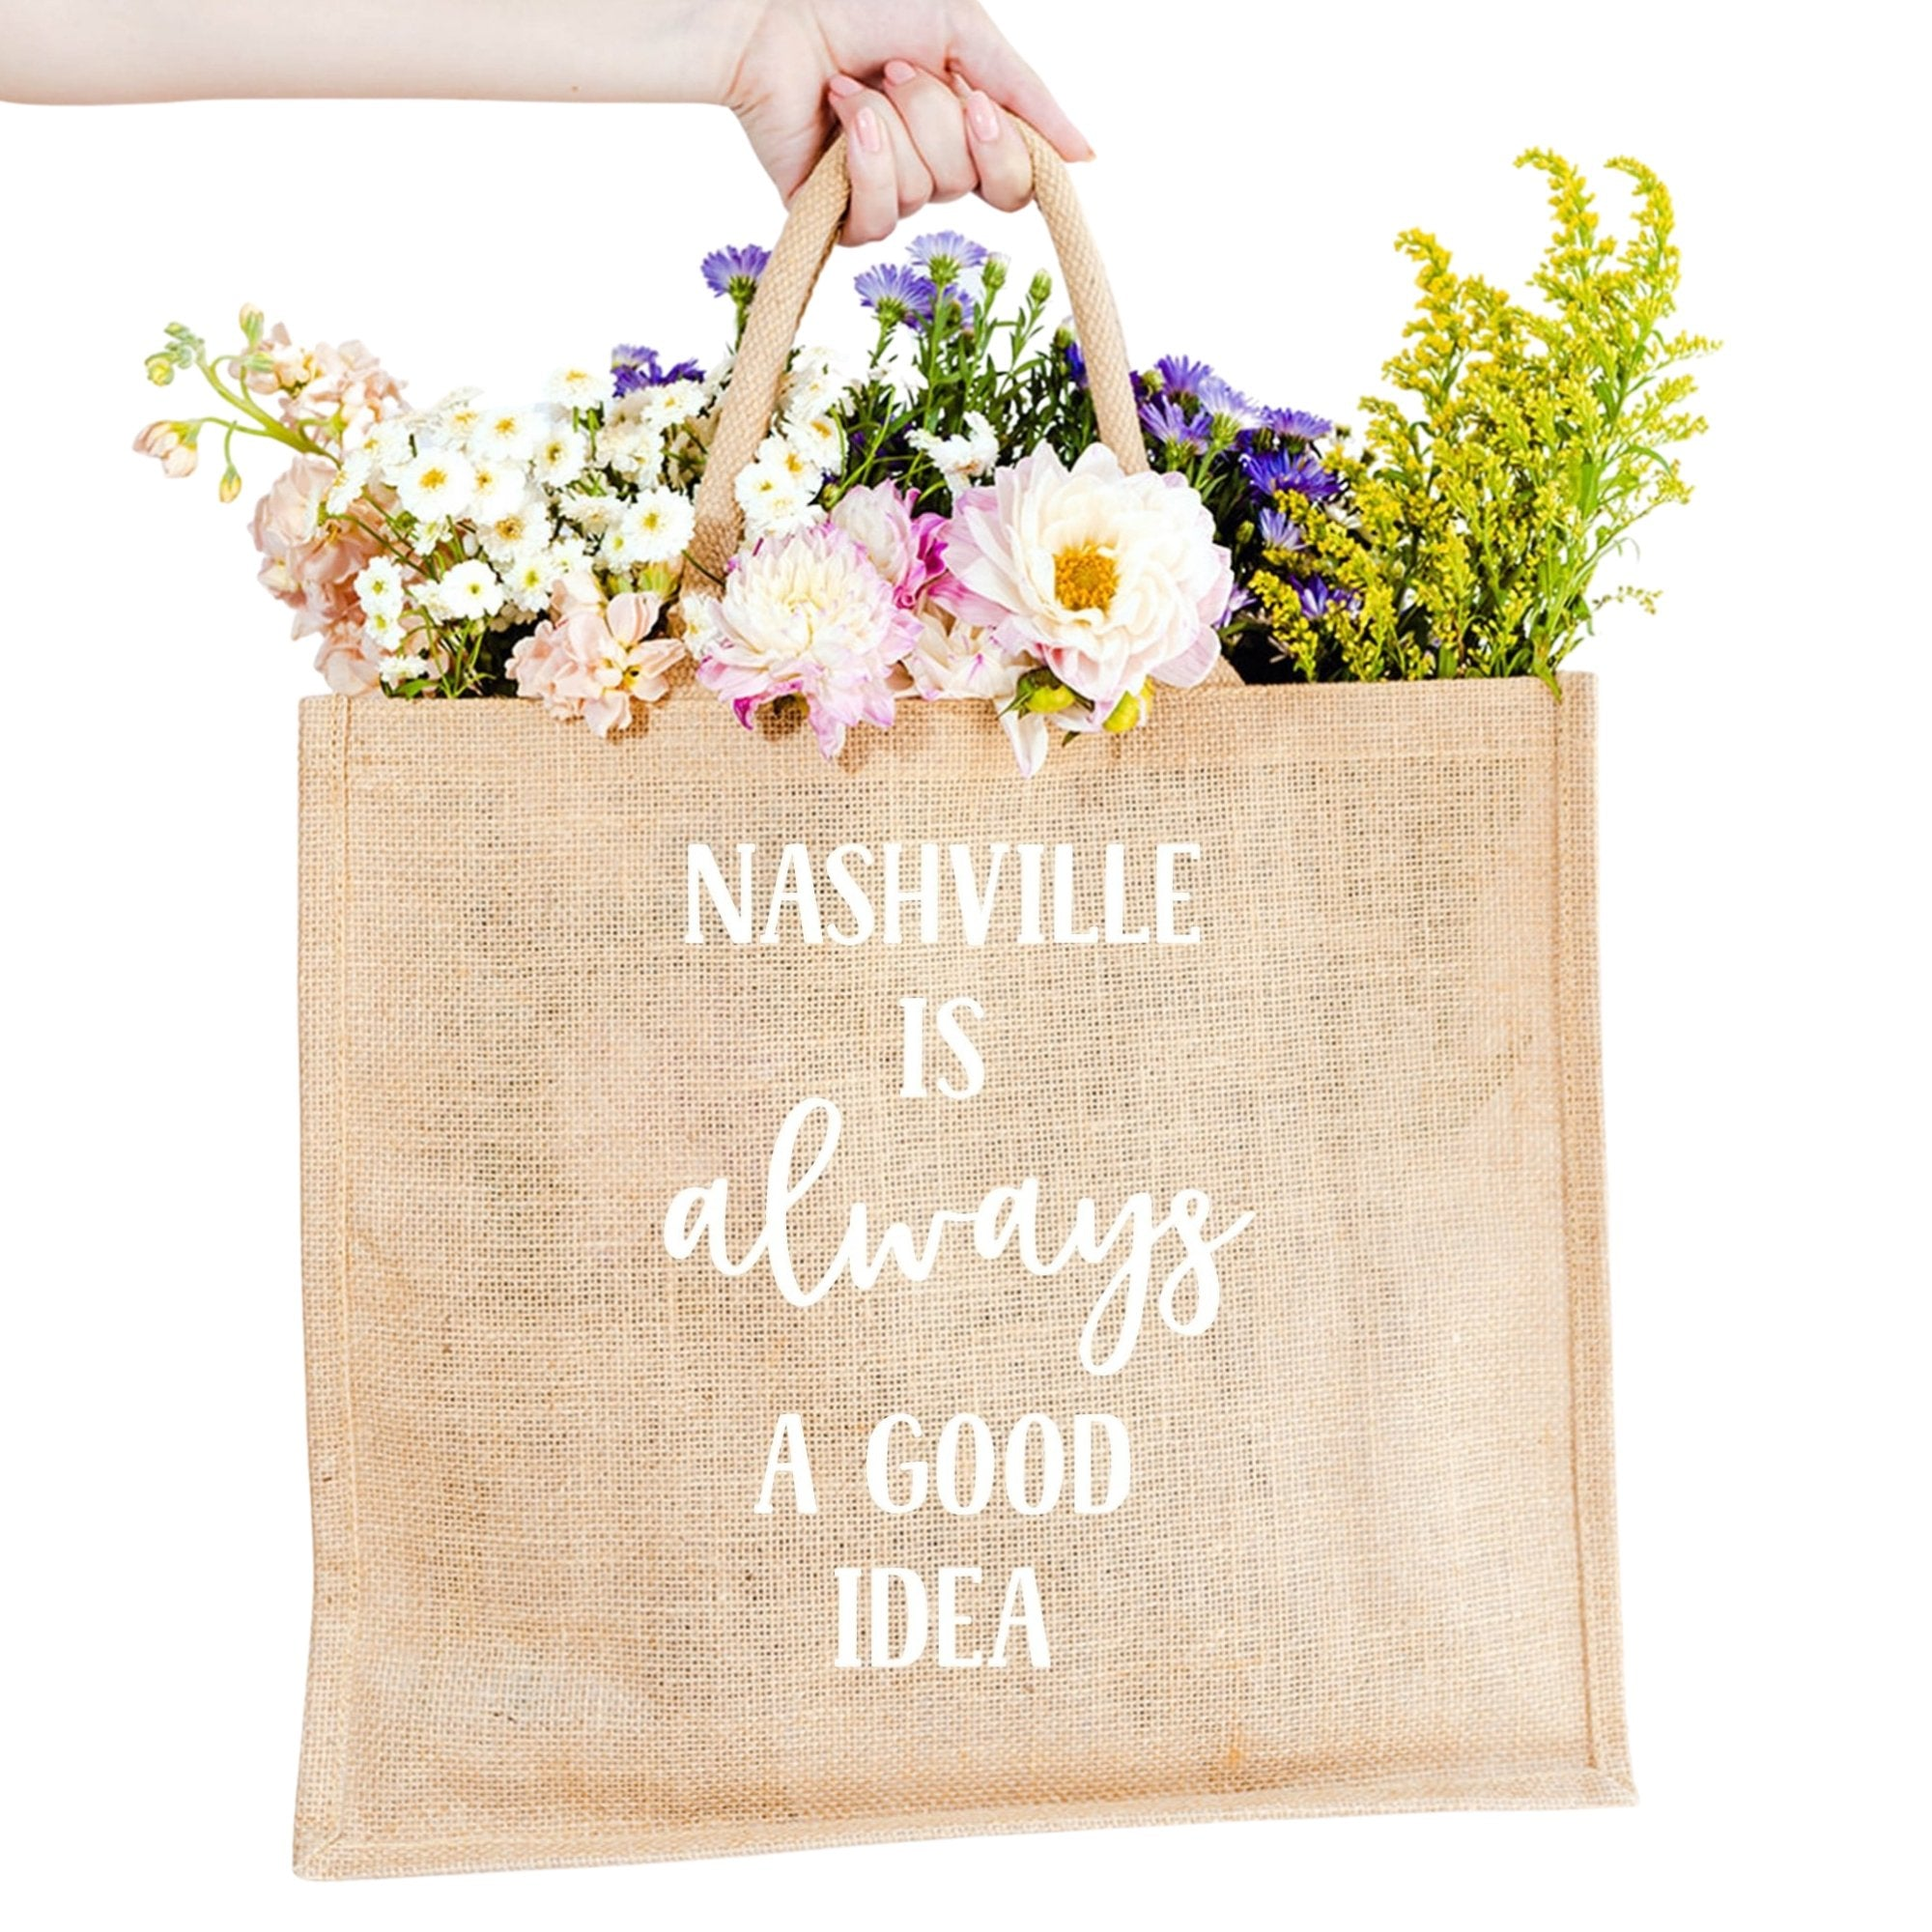 Nashville is Always A Good Idea Jute Carryall